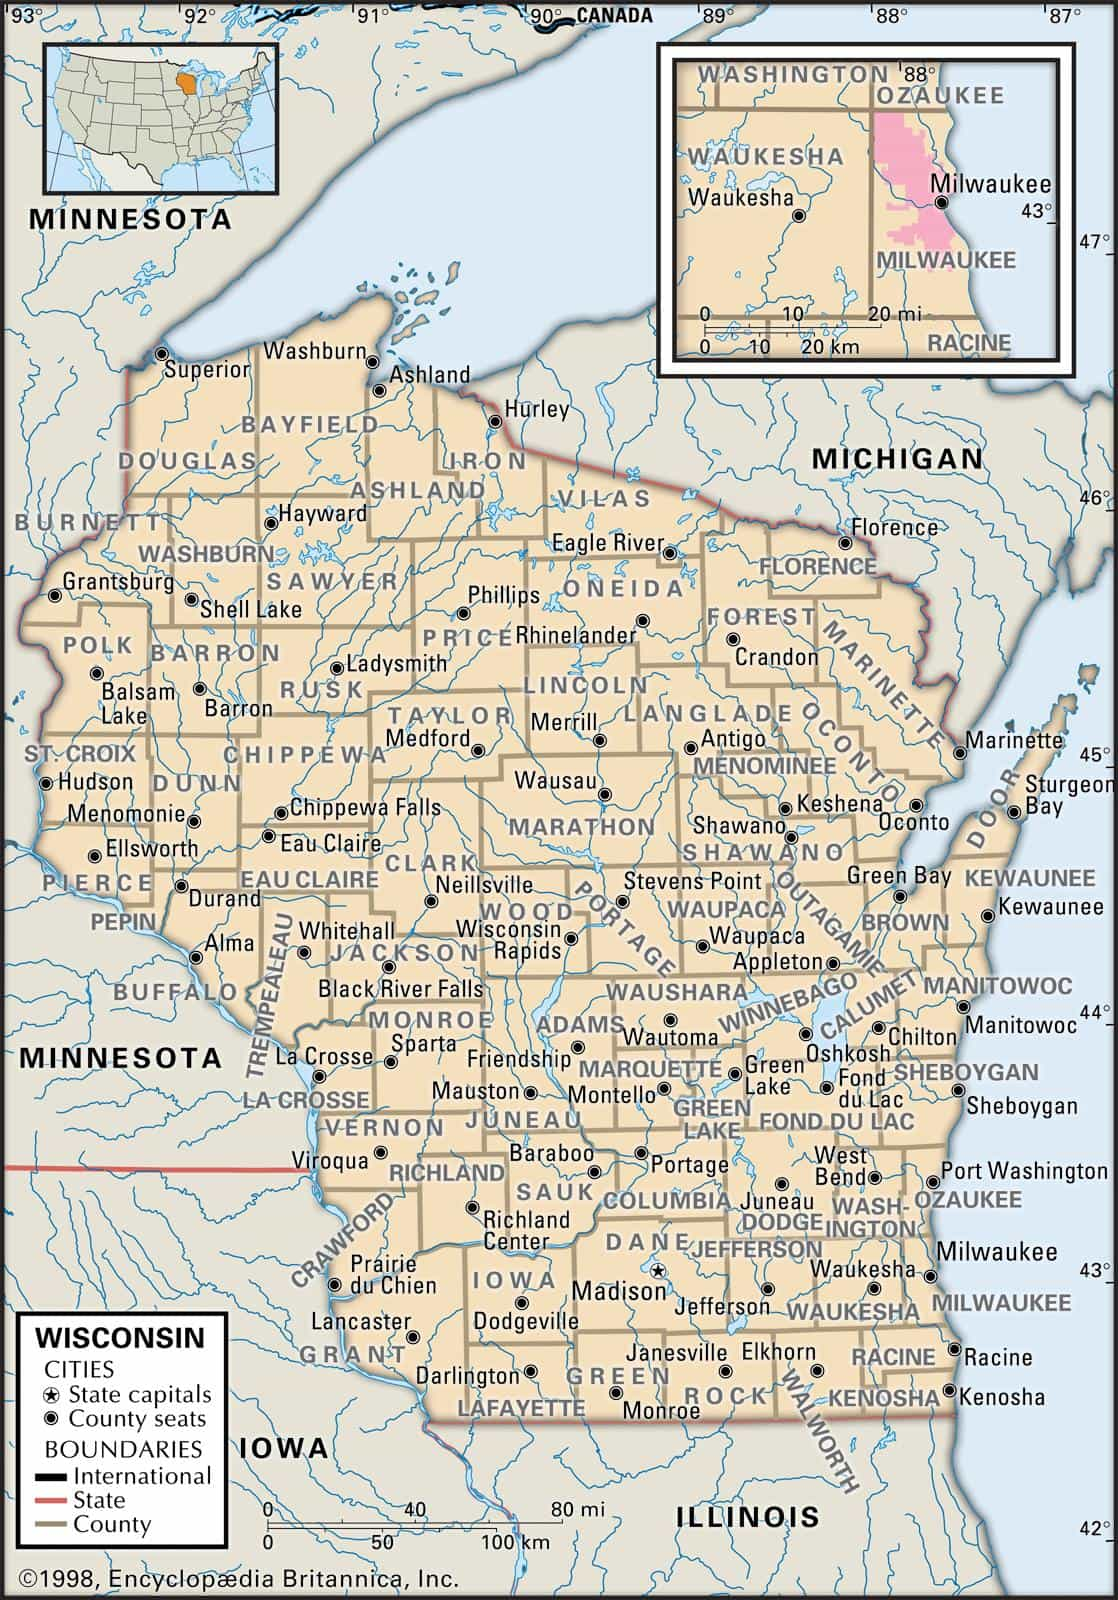 historical facts of wisconsin counties guide